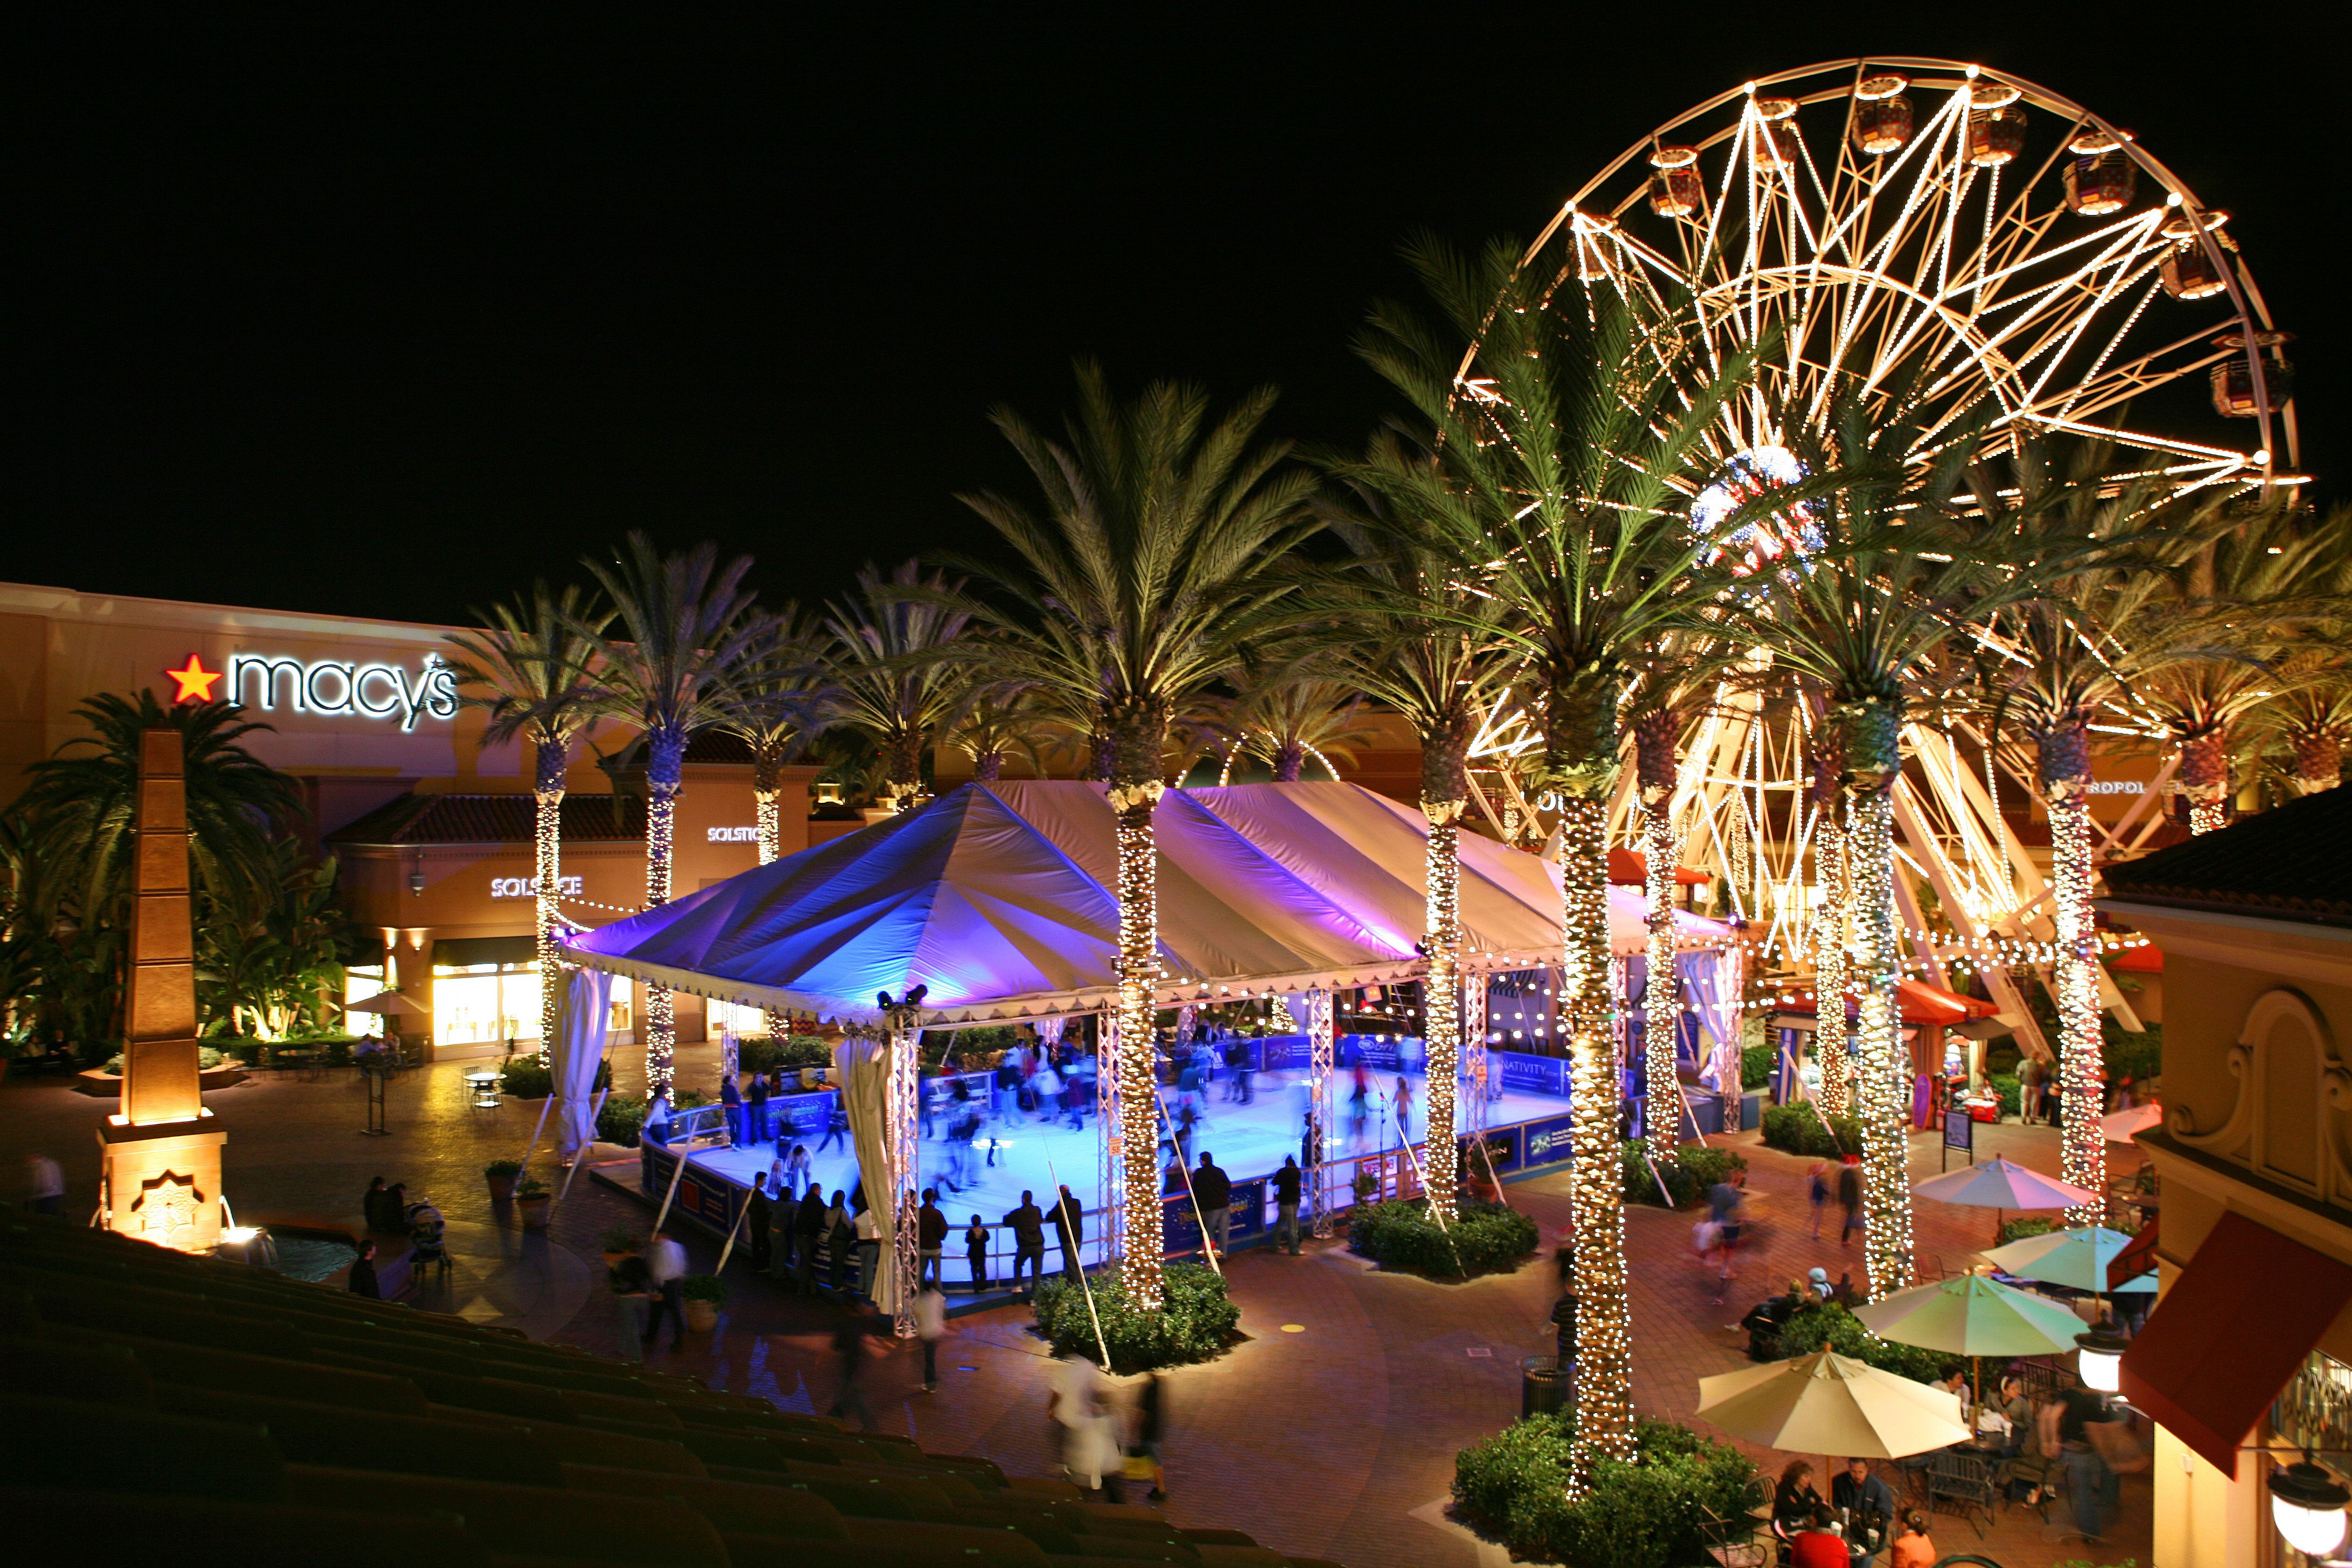 The Irvine Spectrum In Irvine Ca Is Located Just A Short Drive